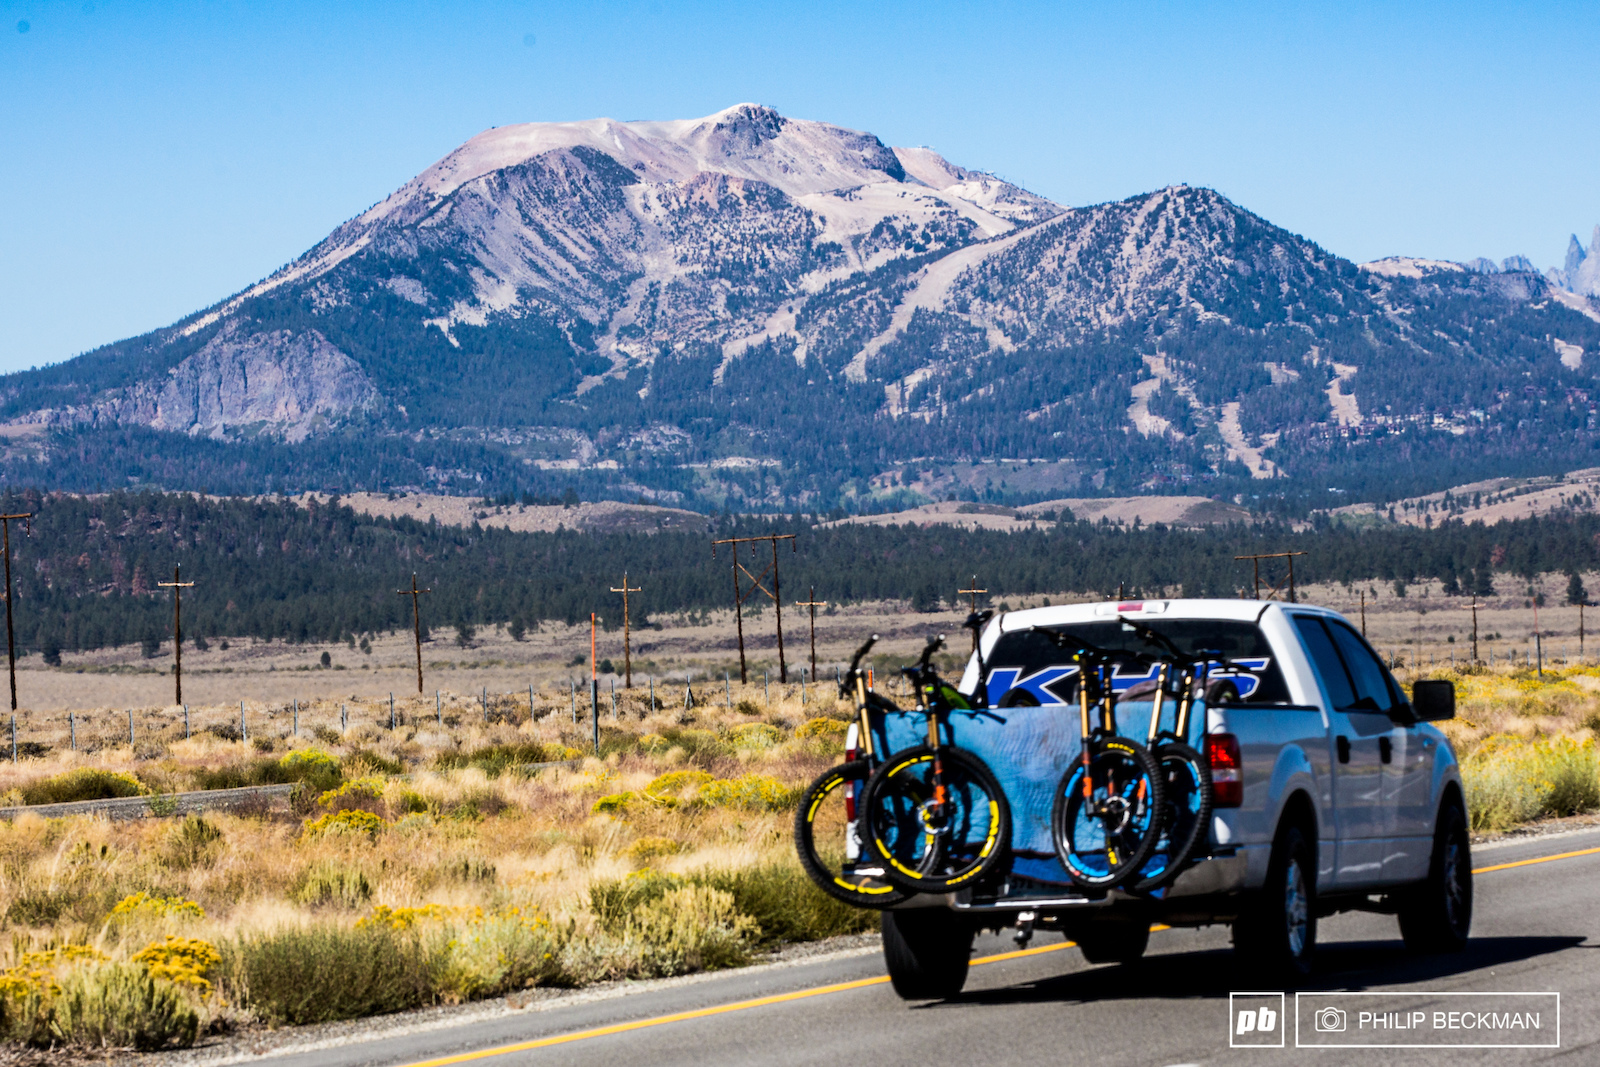 The destination Mammoth Mountain all 11 053 feet of it as seen from the primary feeder route California State 395.